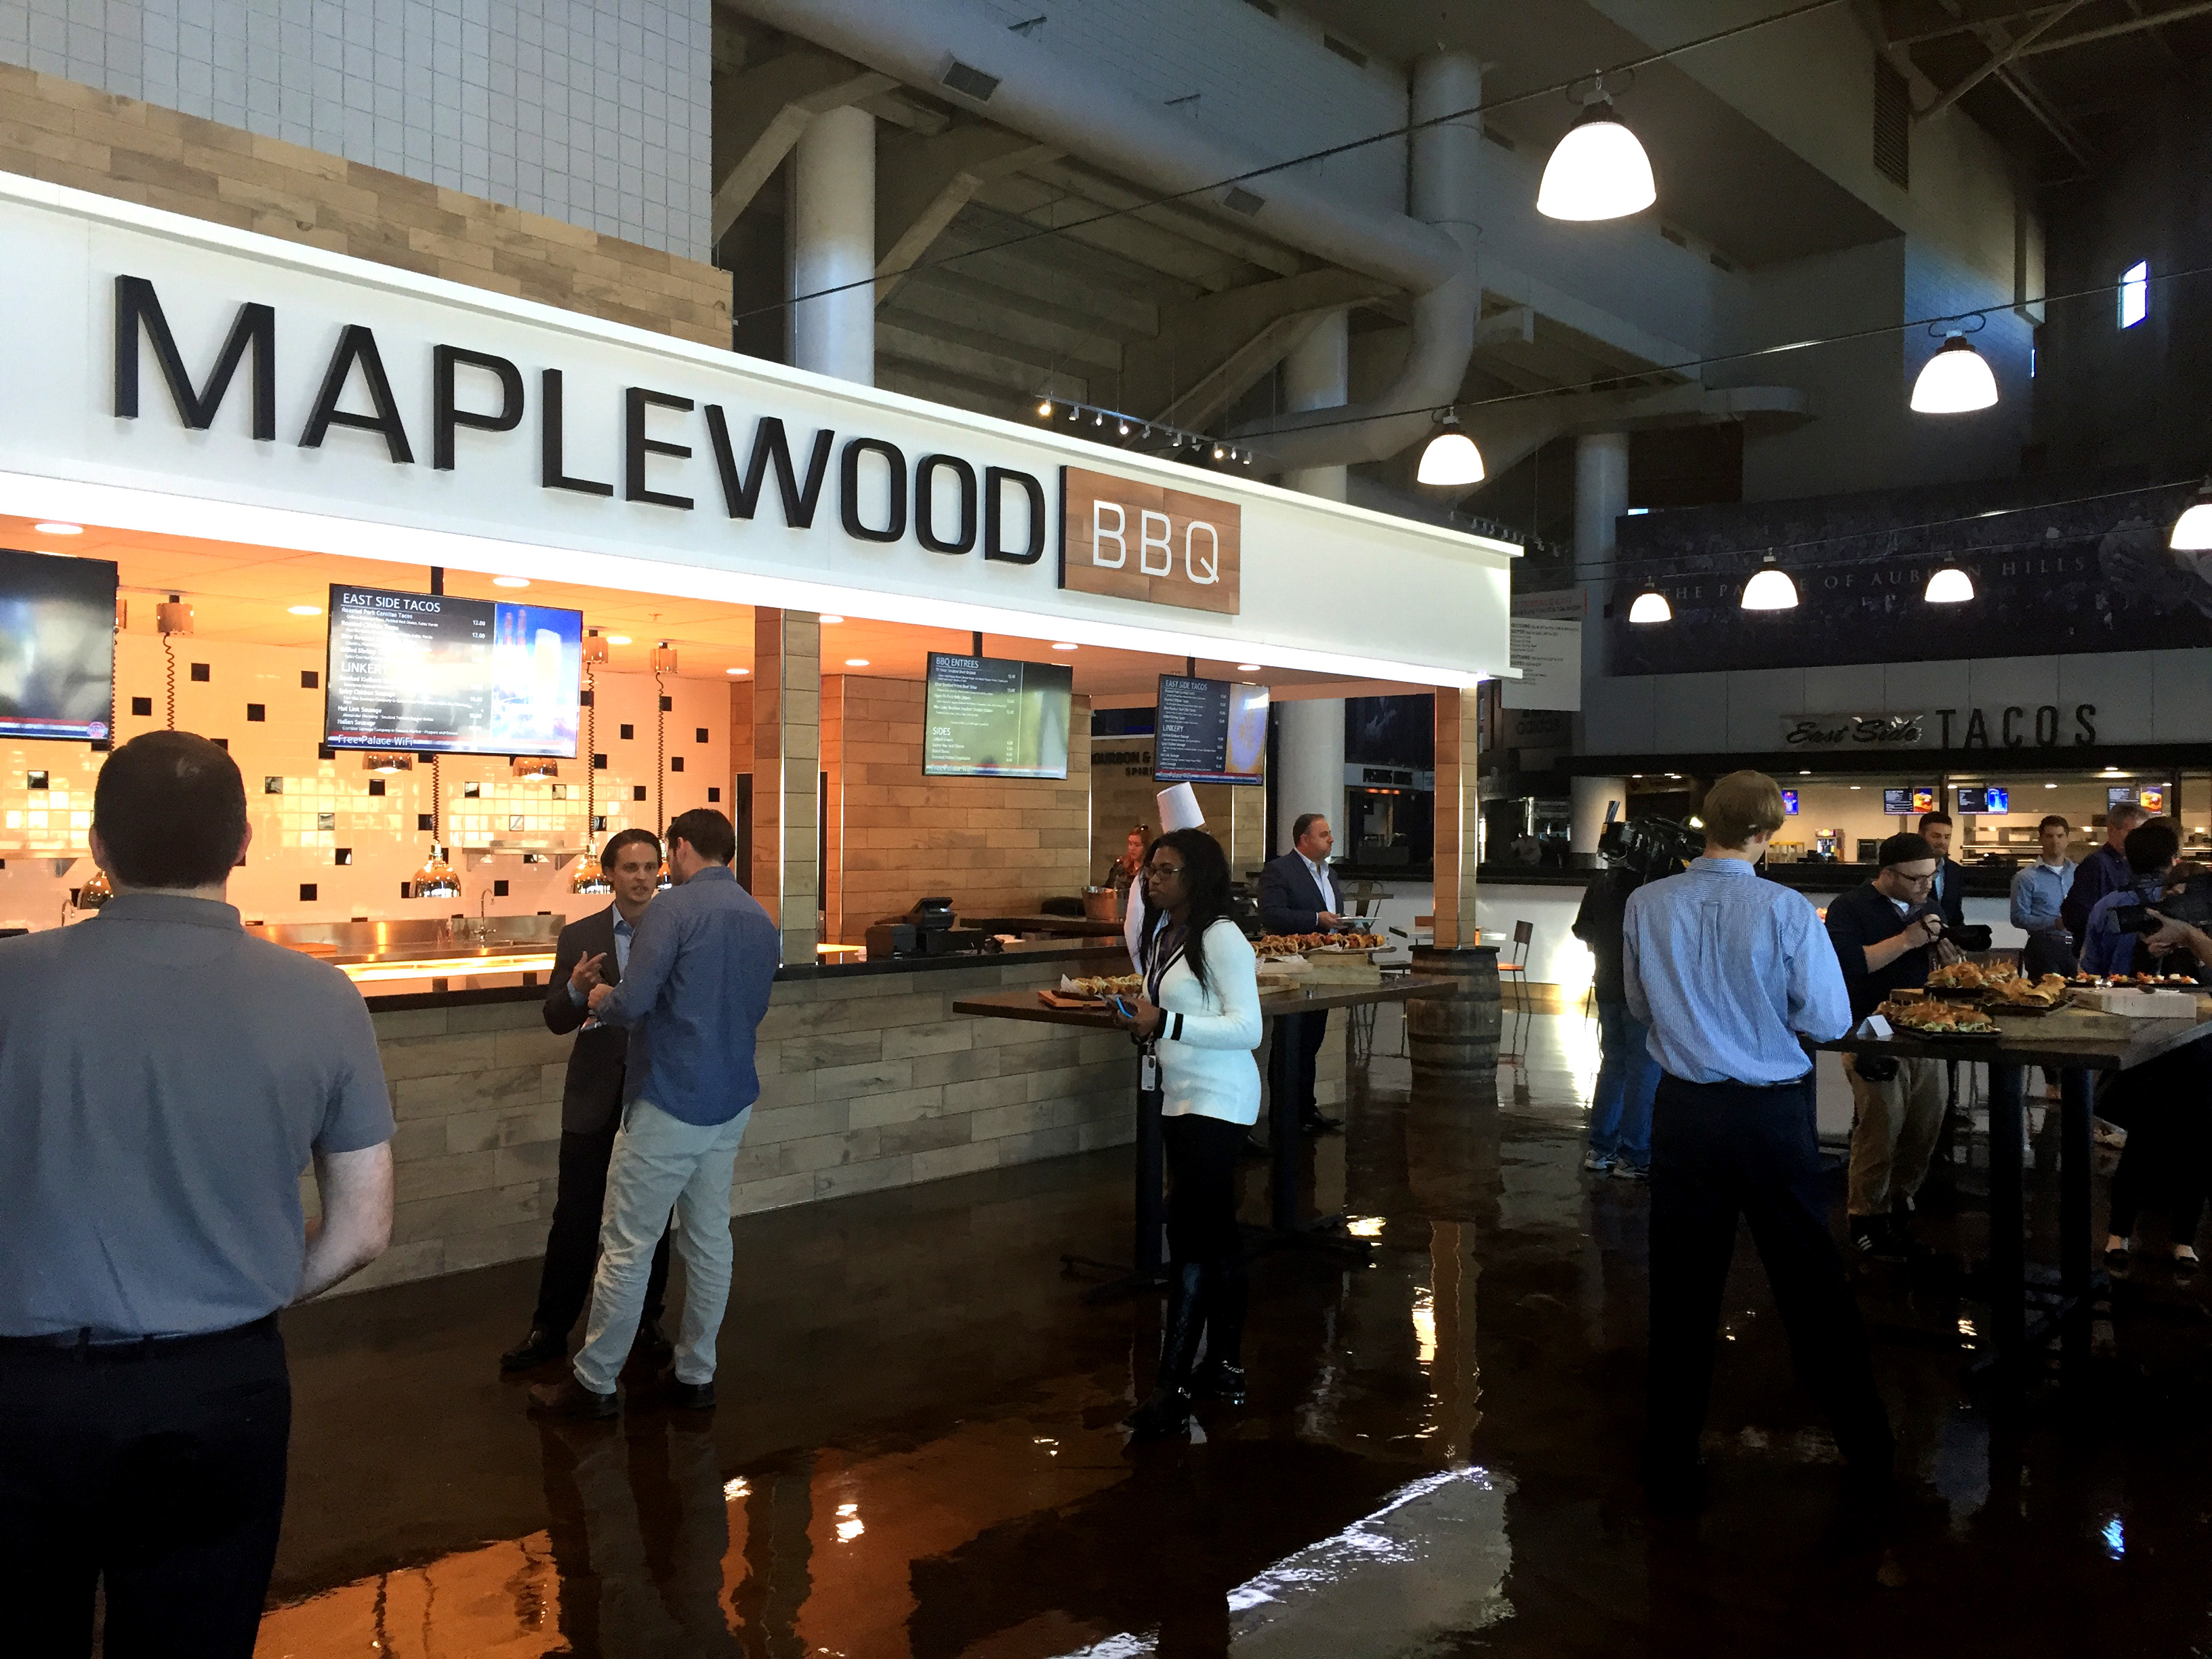 Maplewood BBQ is one of several new offerings at the Palace of Auburn Hills.